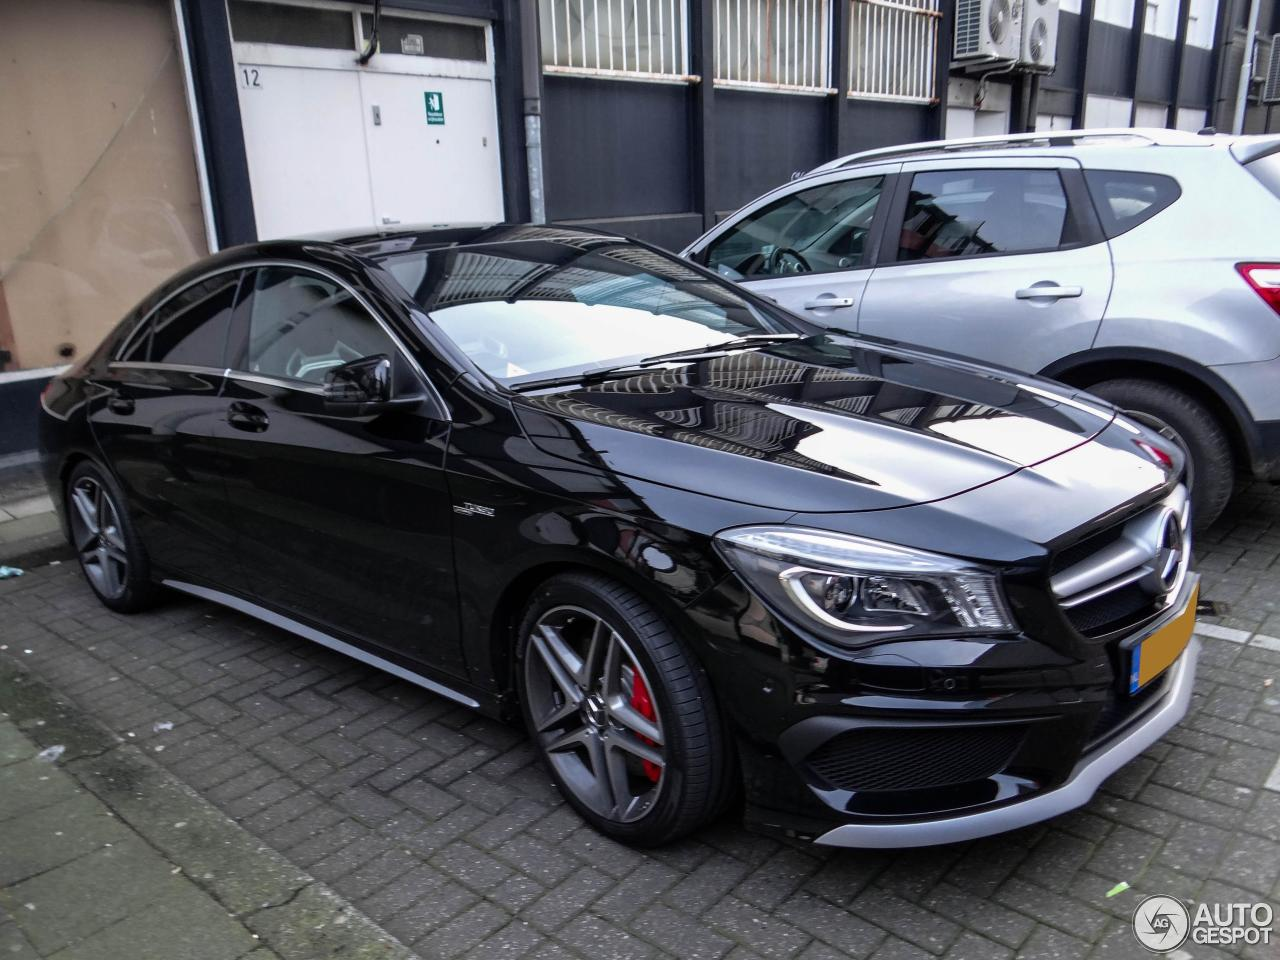 Mercedes benz cla 45 amg c117 18 januari 2014 autogespot for Mercedes benz amg cla 45